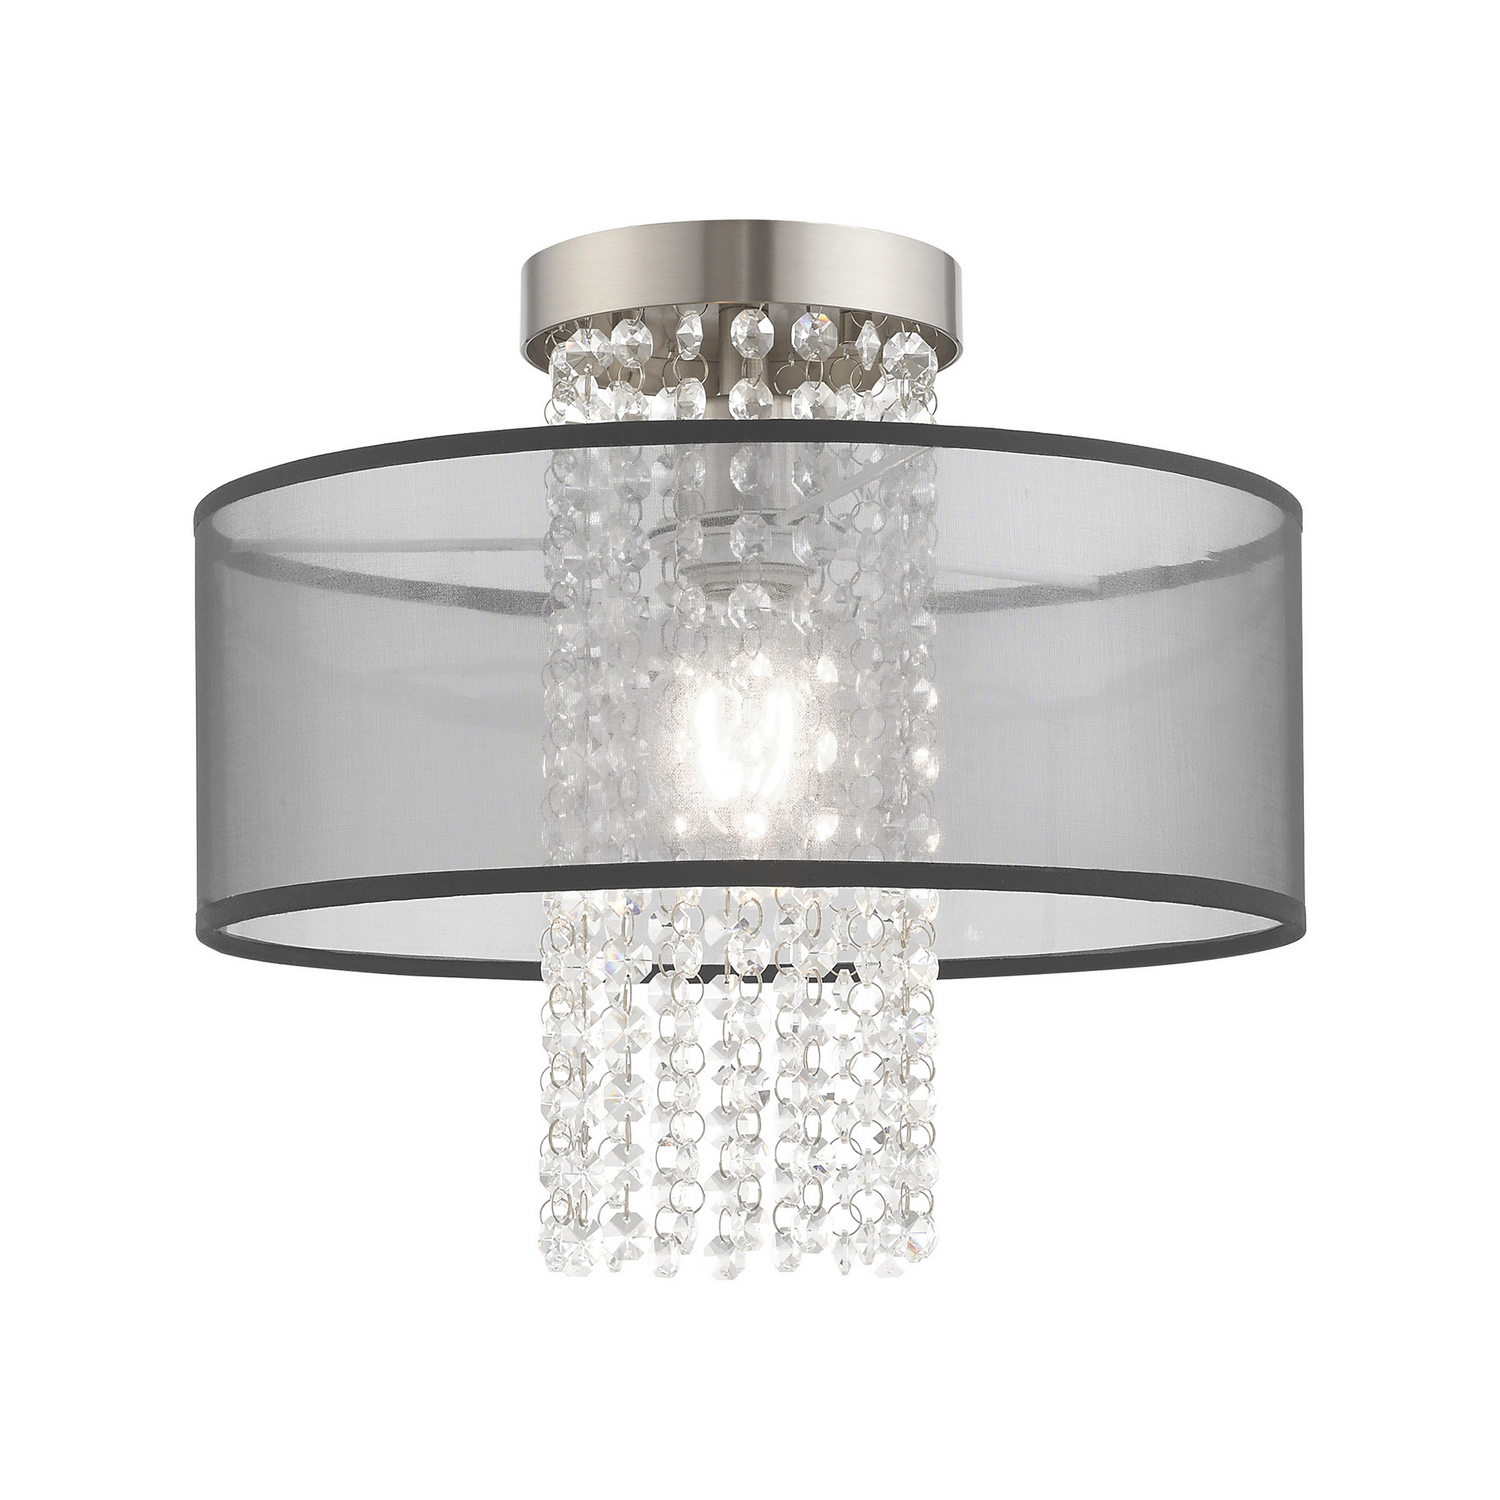 One Light Ceiling Mount From The Bella Vista Collection By Livex Lighting 43202 91